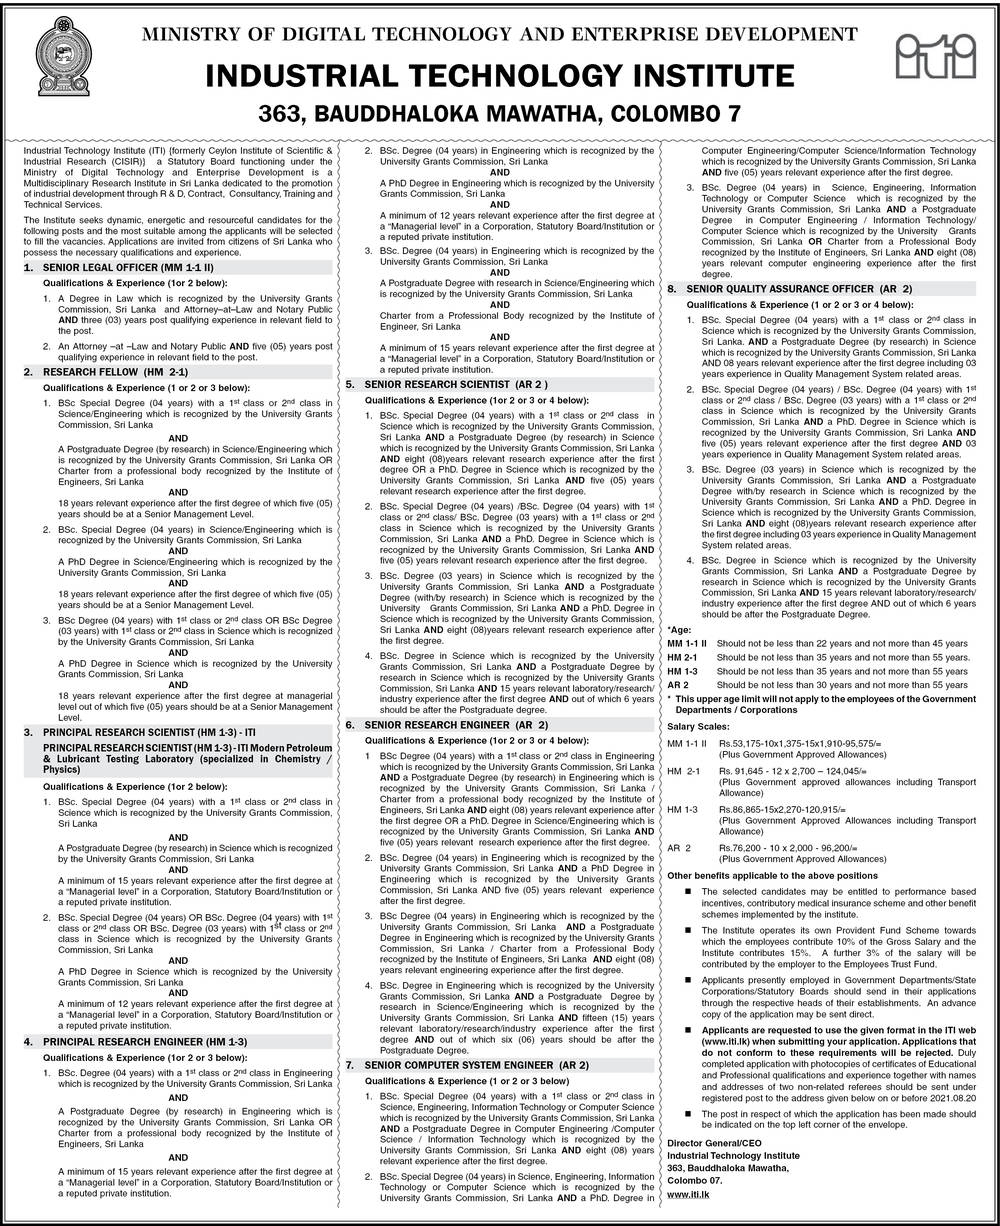 Senior Legal Officer, Research Scholar, Chief Research Scientist, Chief Research Engineer, Senior Research Scientist, Senior Research Engineer, Senior Computer Systems Engineer, Senior Quality Control Officer